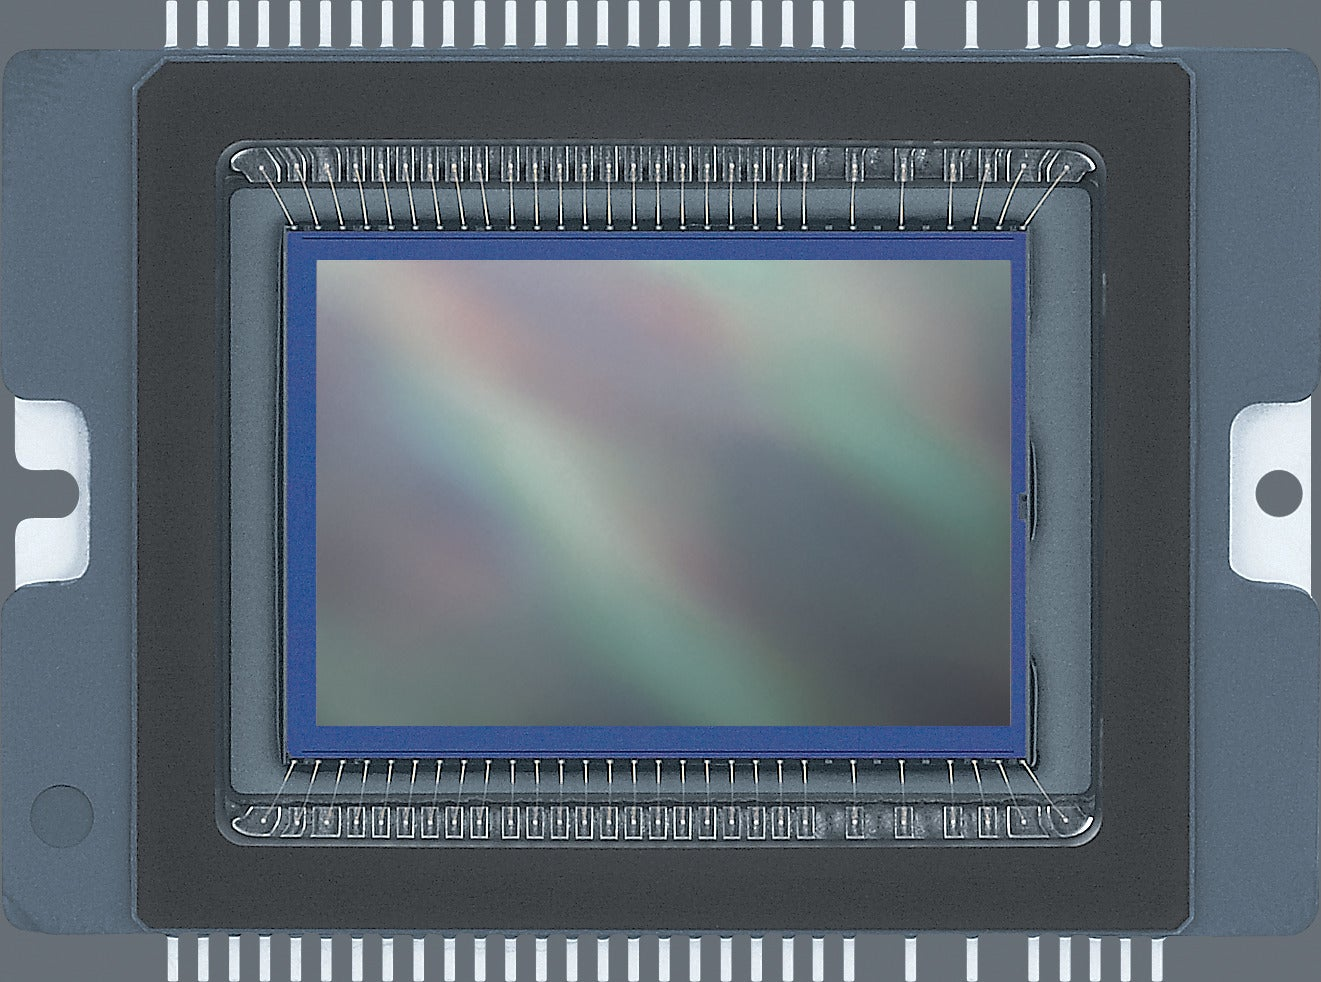 Demystifying digital camera sensors once and for all | TechHive